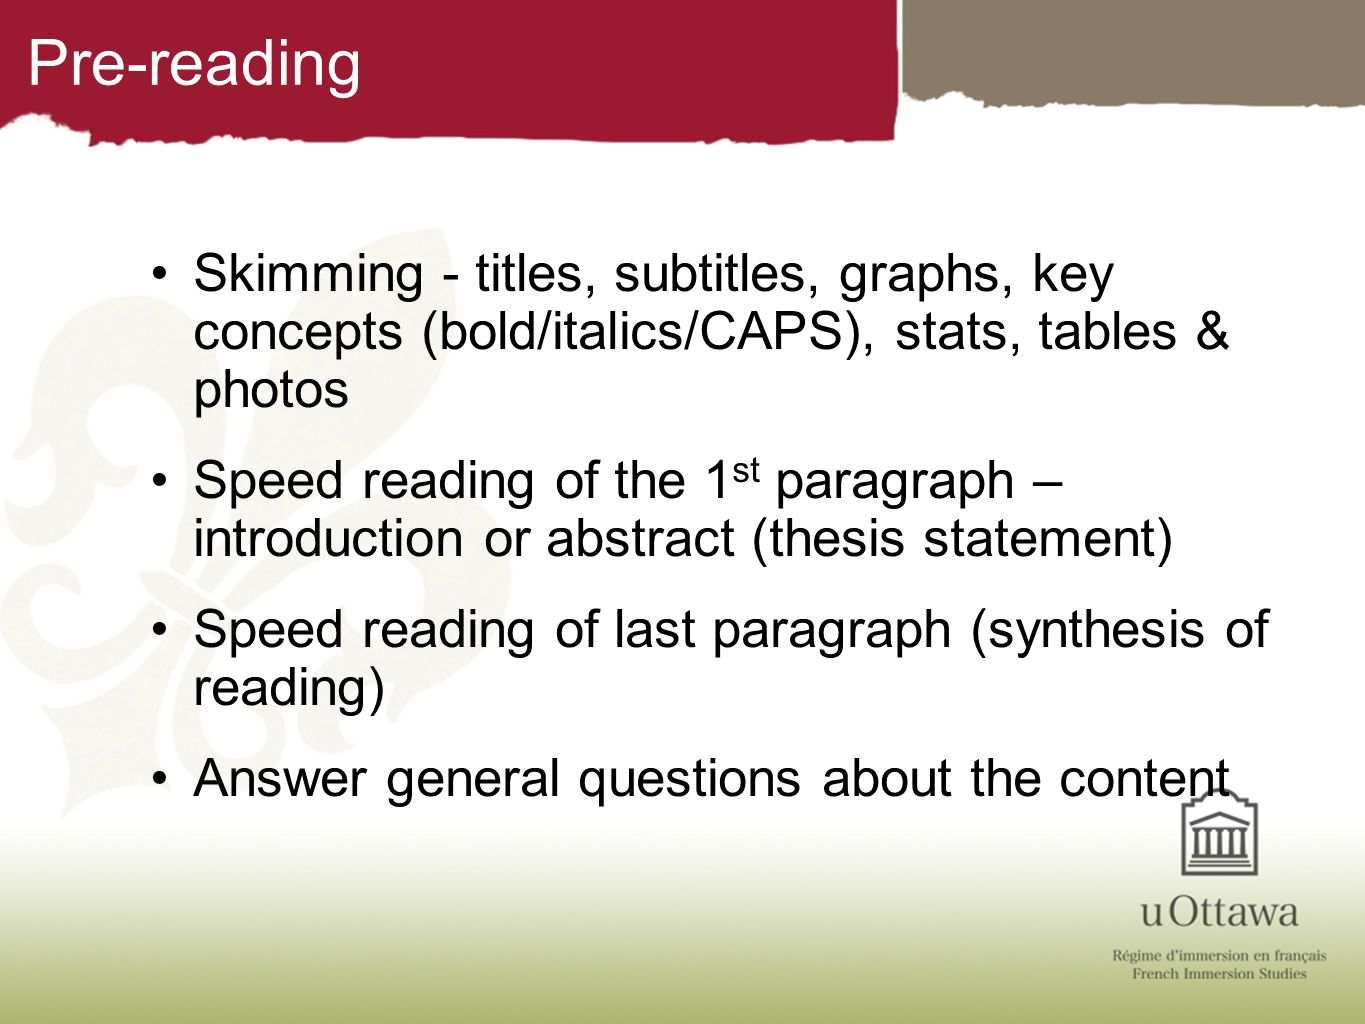 Pre-reading Skimming - titles, subtitles, graphs, key concepts (bold/italics/CAPS), stats, tables & photos.